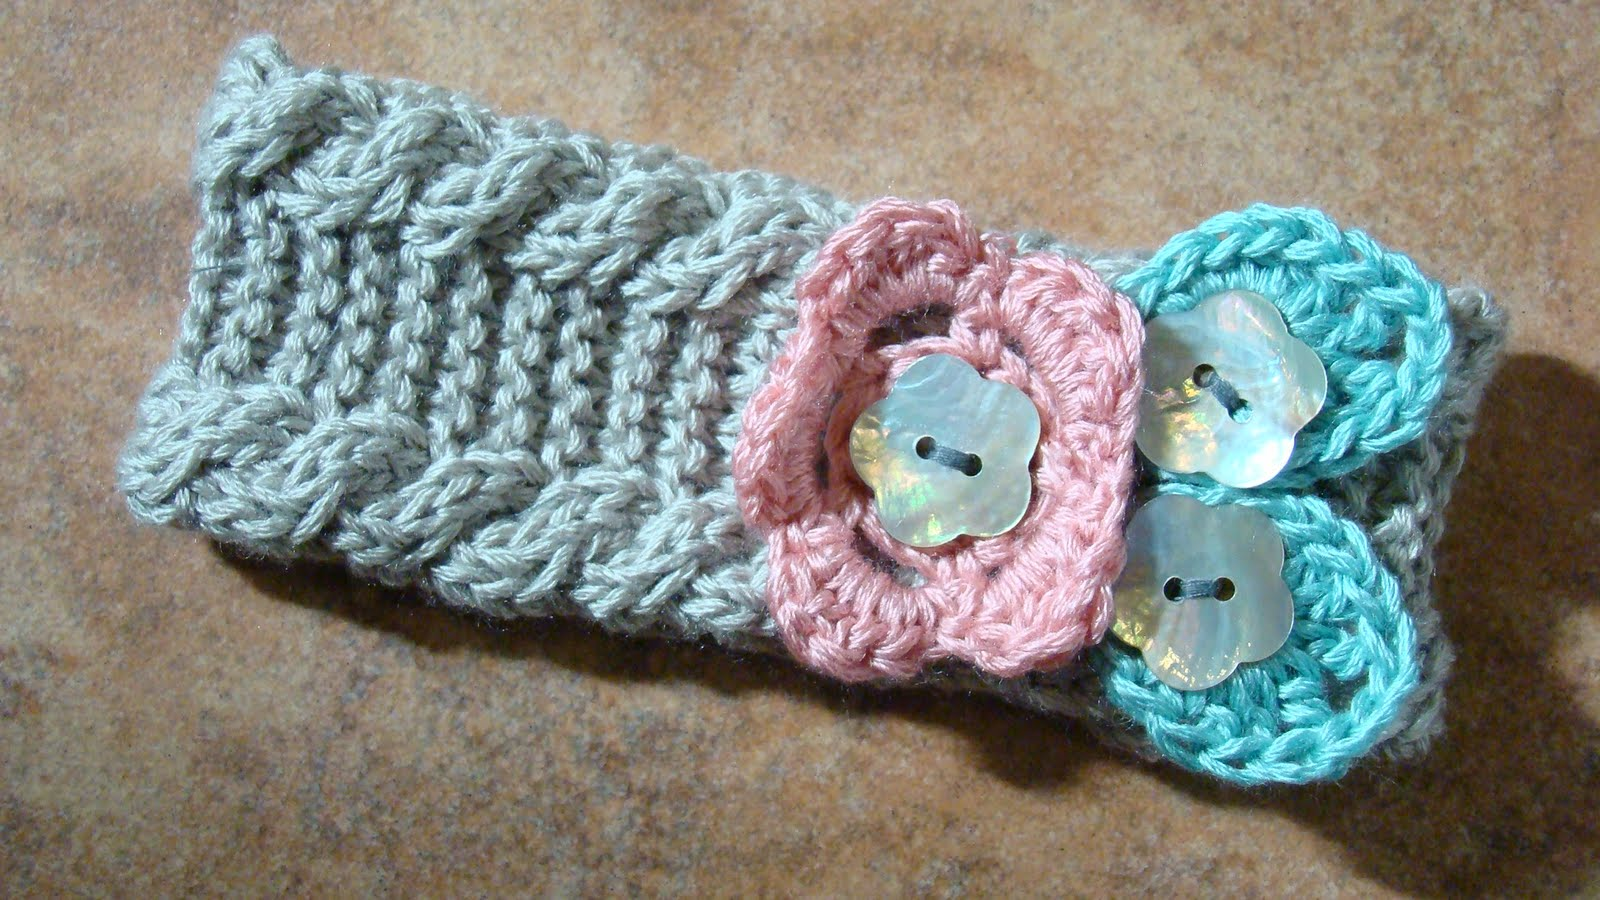 Estonian Knitting Patterns Free : Crafts By Starlight: Knit Infant Winter Headband